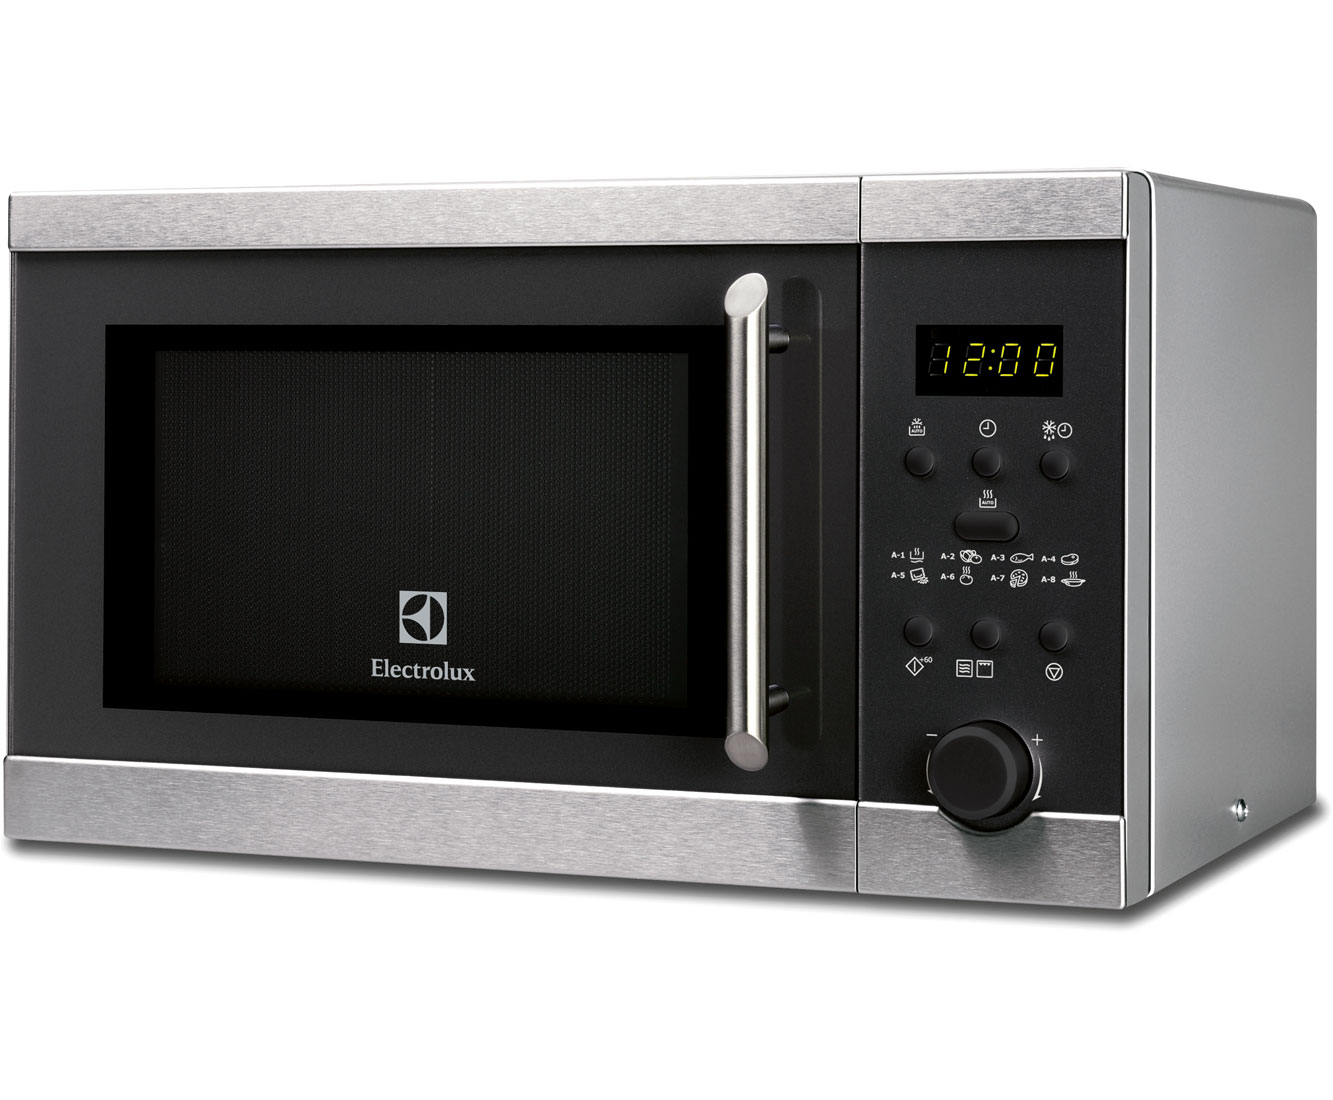 Electrolux EMS20300OX 19 Litre Microwave With Grill - Stainless Steel